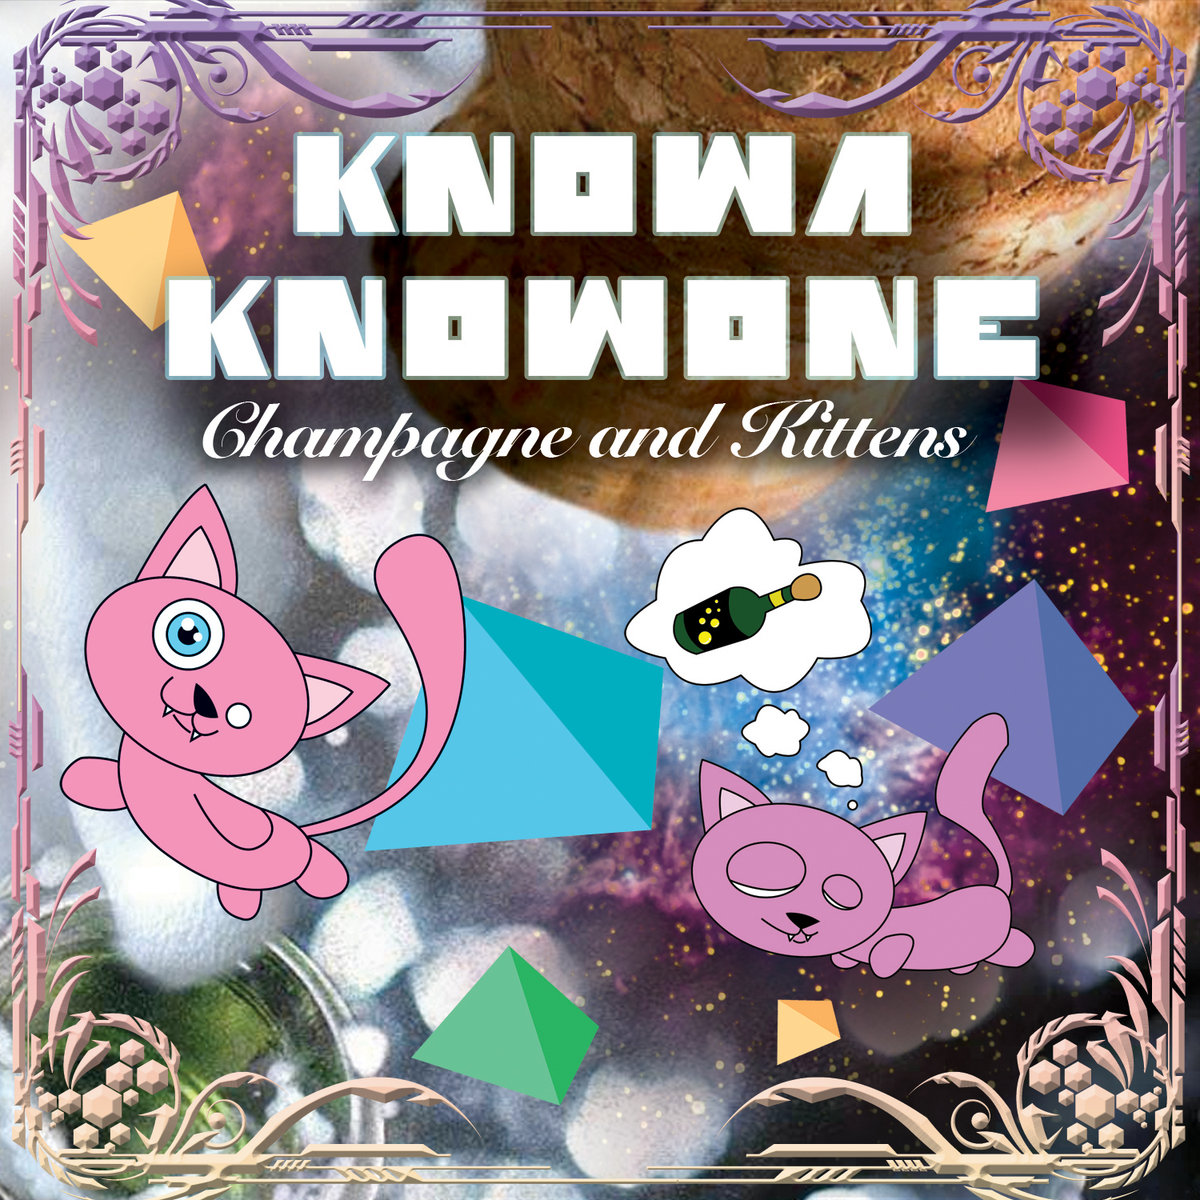 Knowa Knowone - That Propa (Instrumental) @ 'Champagne and Kittens' album (bass, electronic)